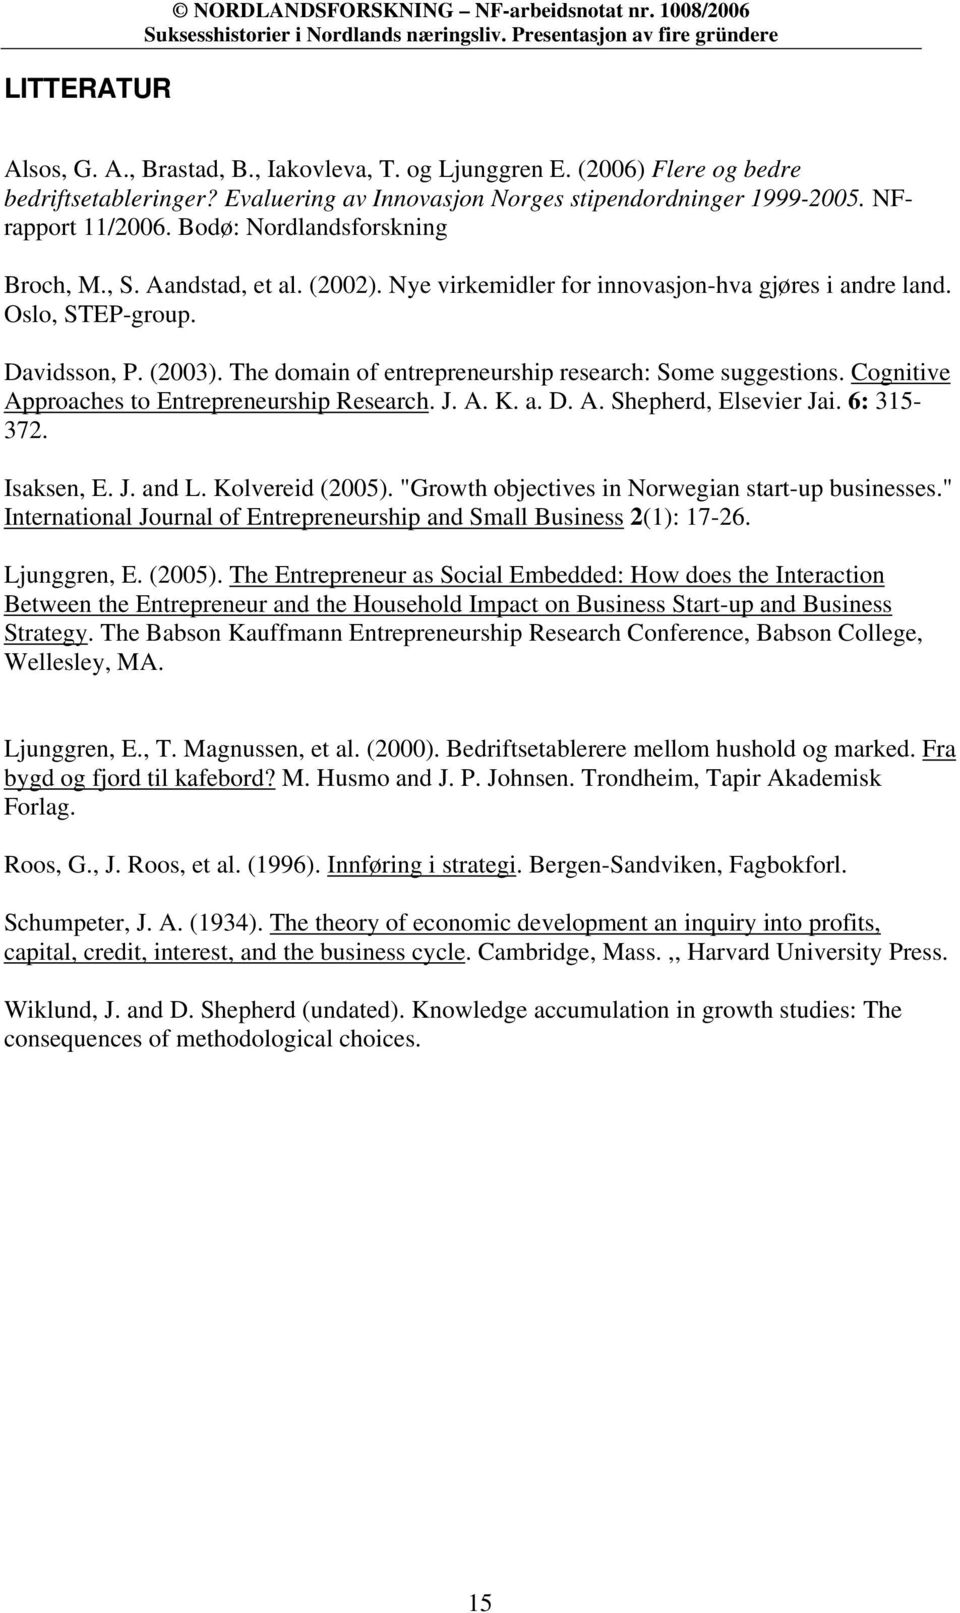 Oslo, STEP-group. Davidsson, P. (2003). The domain of entrepreneurship research: Some suggestions. Cognitive Approaches to Entrepreneurship Research. J. A. K. a. D. A. Shepherd, Elsevier Jai.